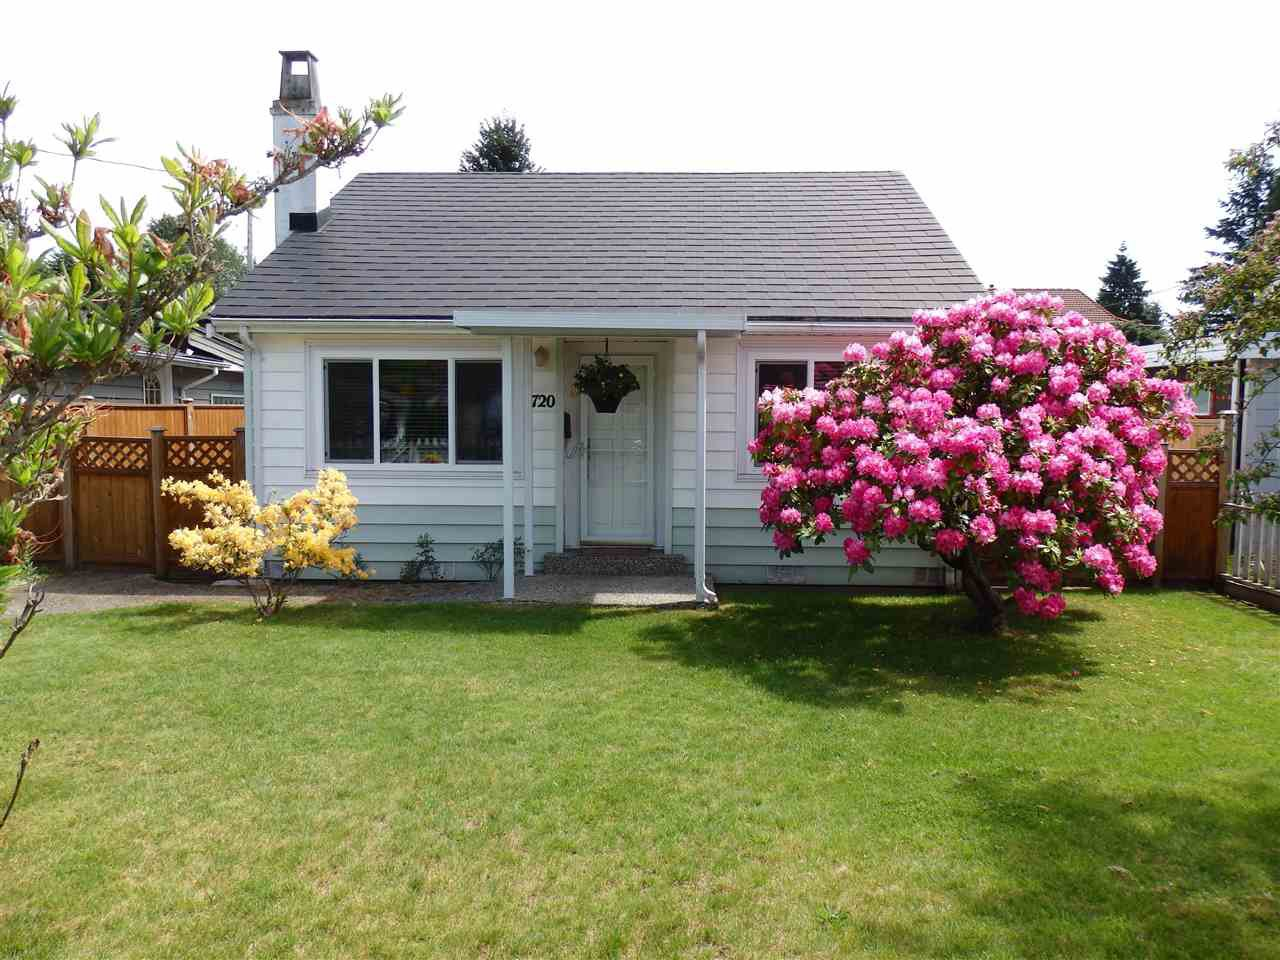 Main Photo: 1720 SUTHERLAND AVENUE in North Vancouver: Boulevard House for sale : MLS®# R2258185